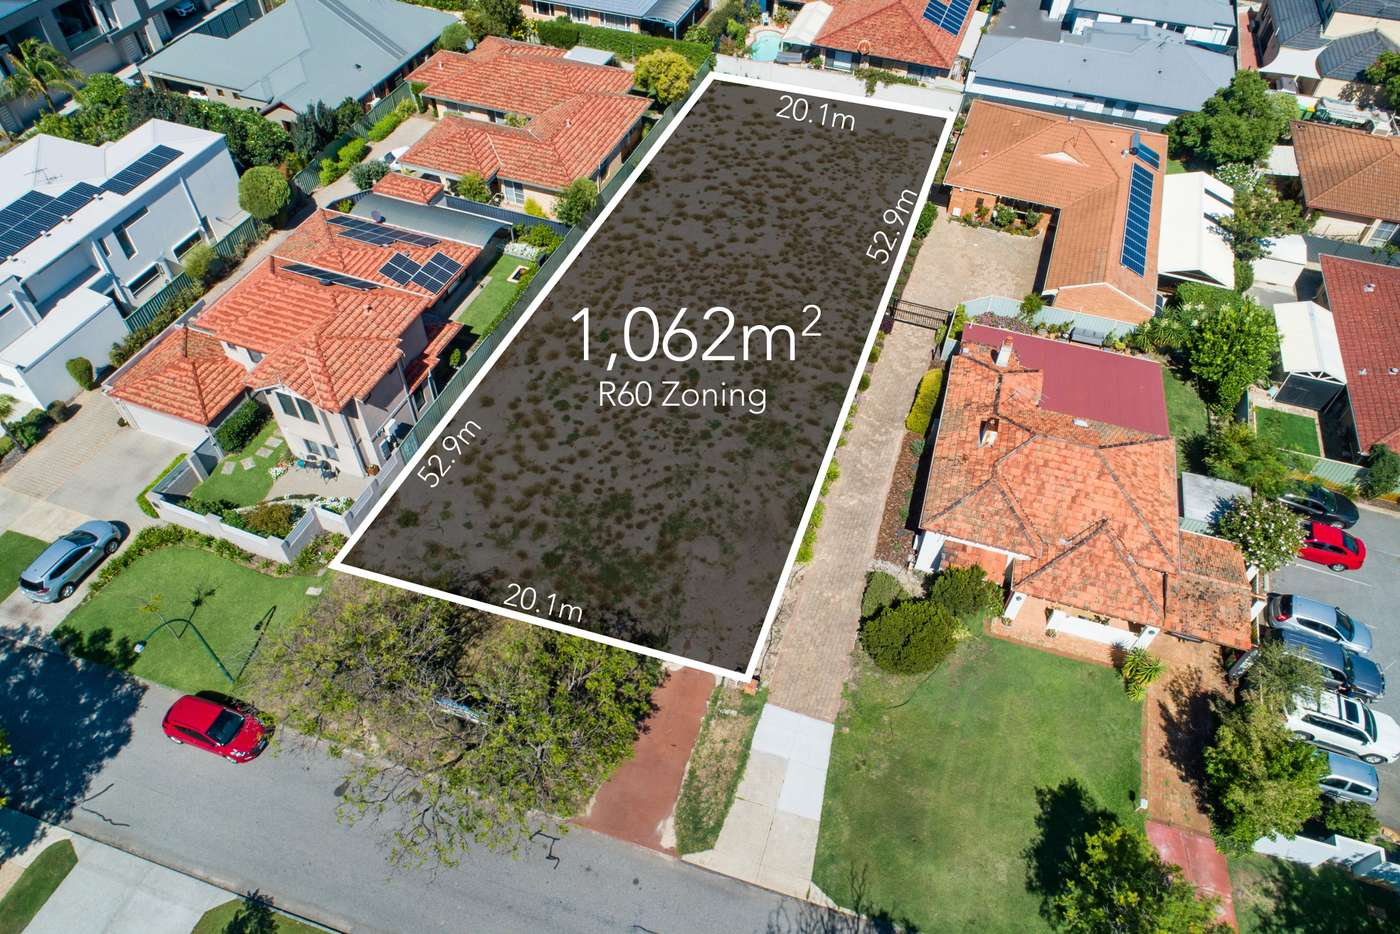 Main view of Homely house listing, 73 Gairloch Street, Mount Pleasant WA 6153